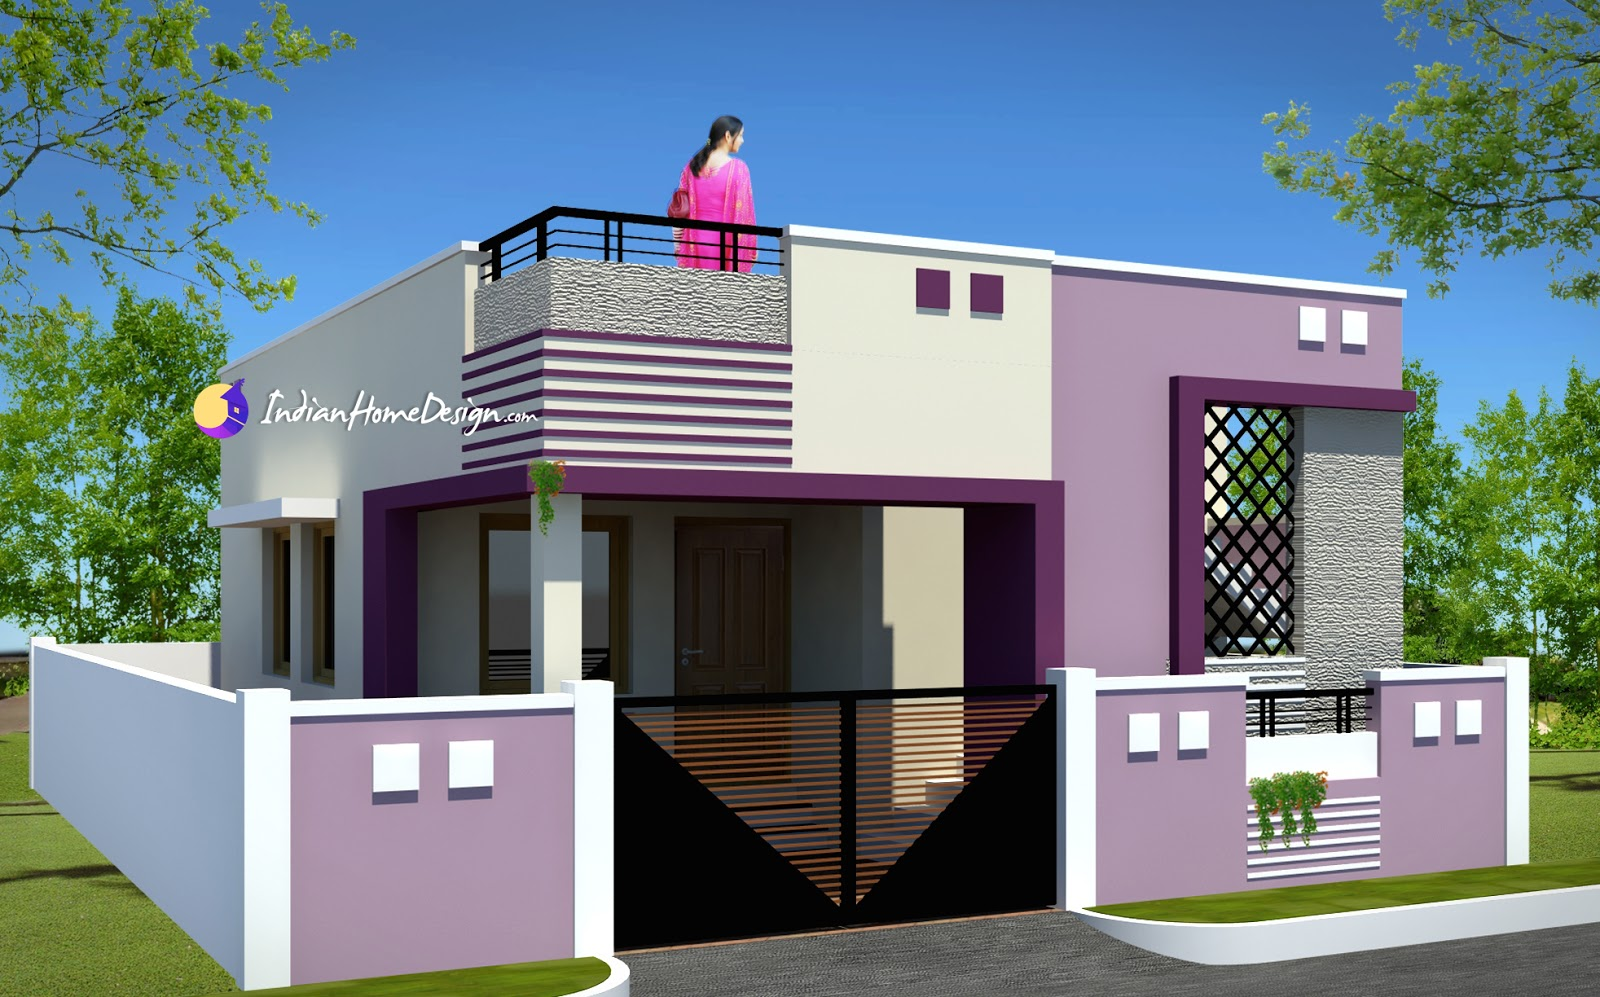 Contemporary%2BLow%2Bcost%2B800%2Bsqft%2B2%2BBhk%2BTamil%2BNadu%2BSmall%2BHome%2BDesign%2Bby%2BNS%2BArchitect - 11+ Indian Small House Design 2 Bedroom Gif